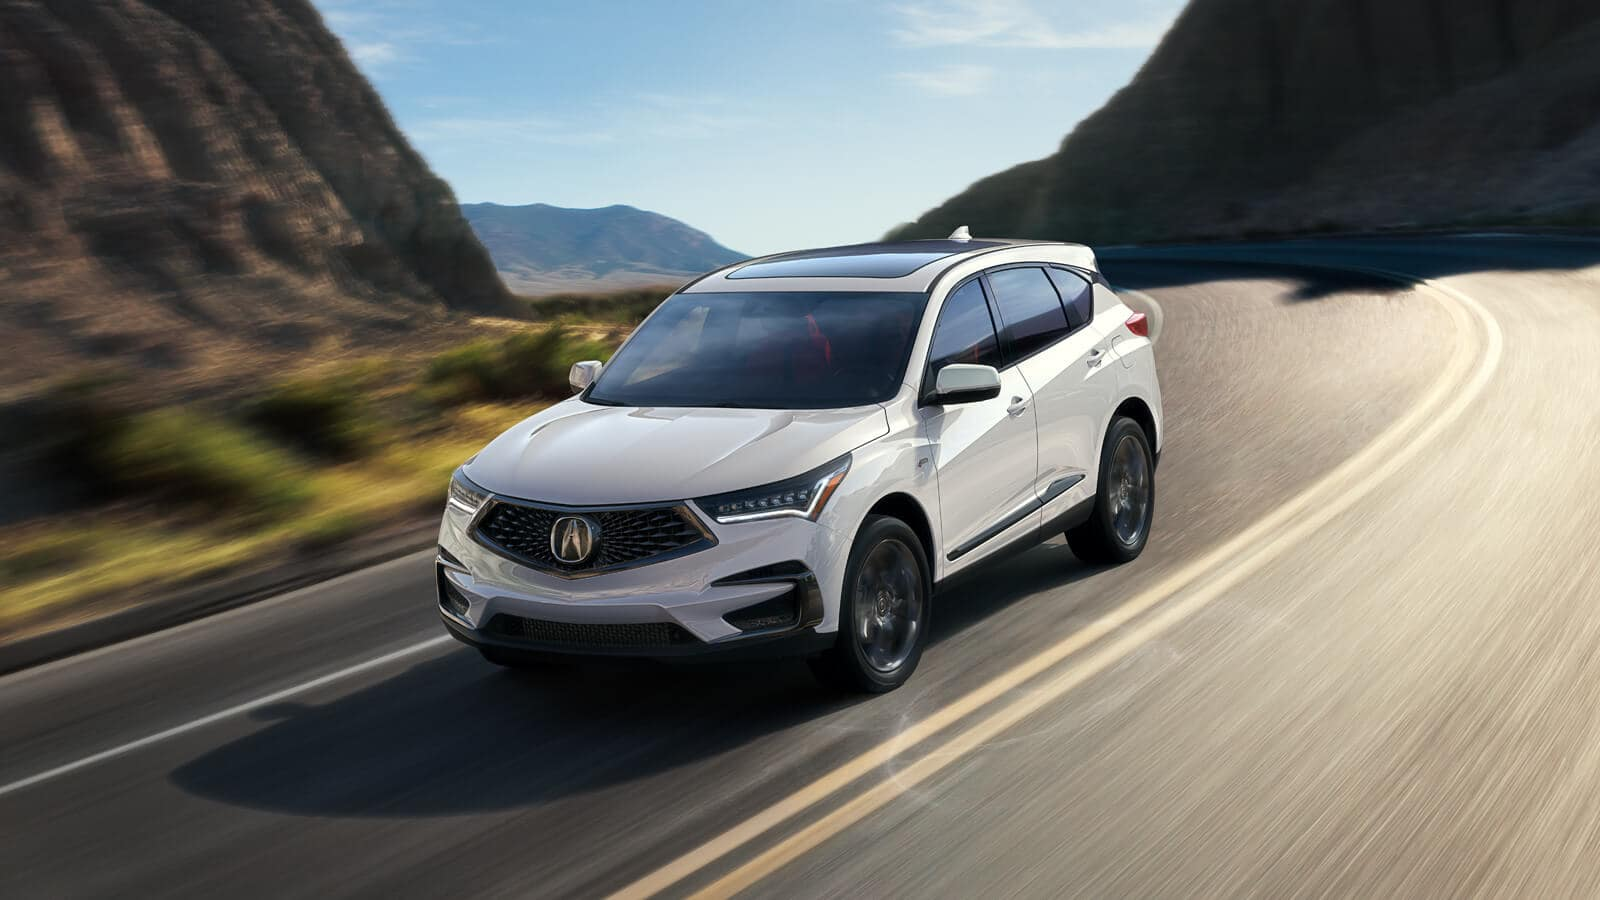 2020 Acura RDX Exterior Front Angle Driver Side